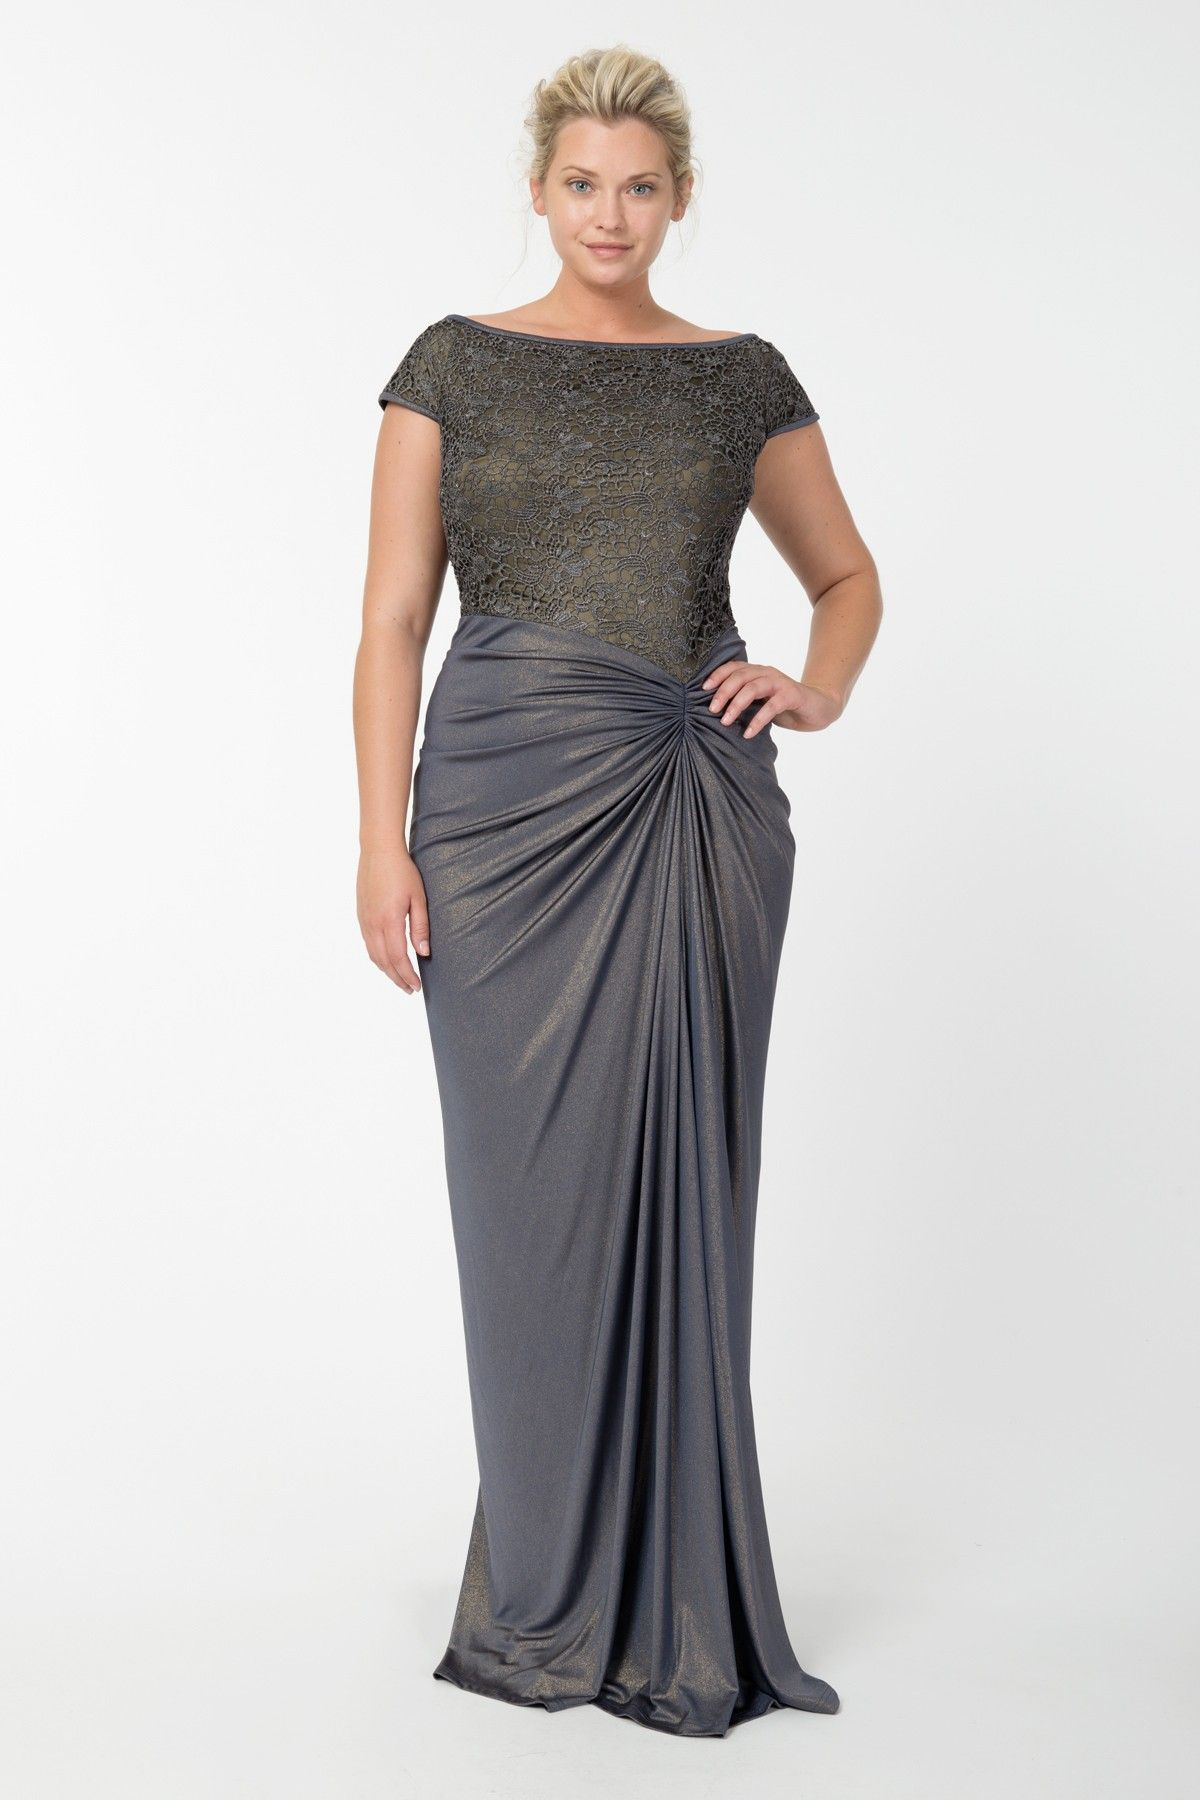 44561100c1b 20 Plus Size Evening Dresses to Look Like Queen